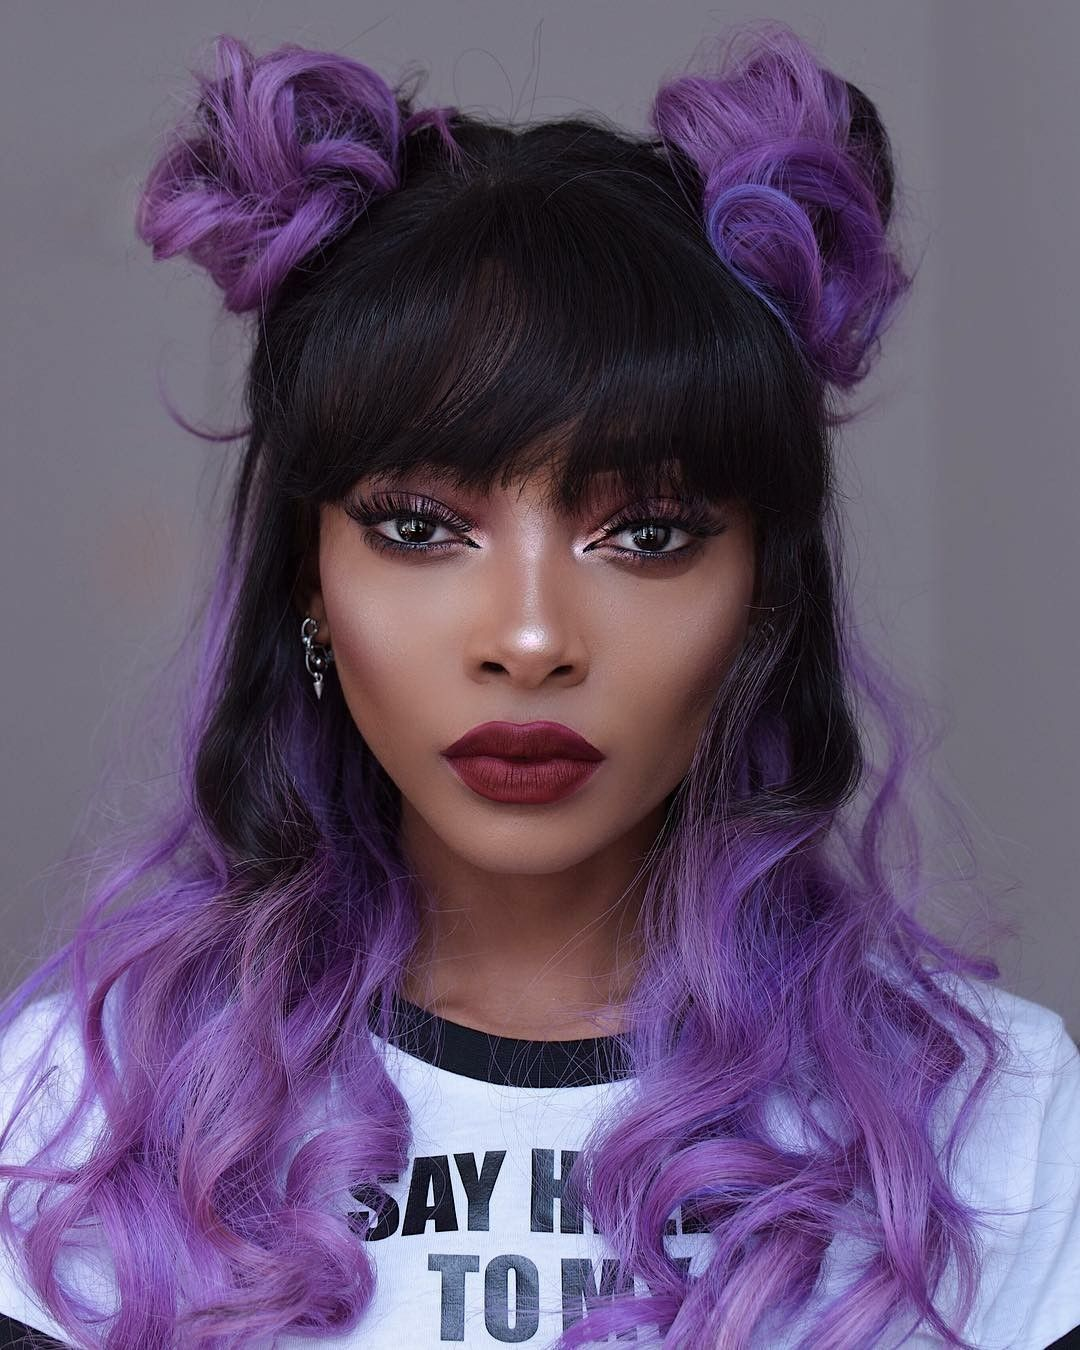 Jnievesdelgado Light Purple Hair Purple Hair Black Girl Hair Color Purple